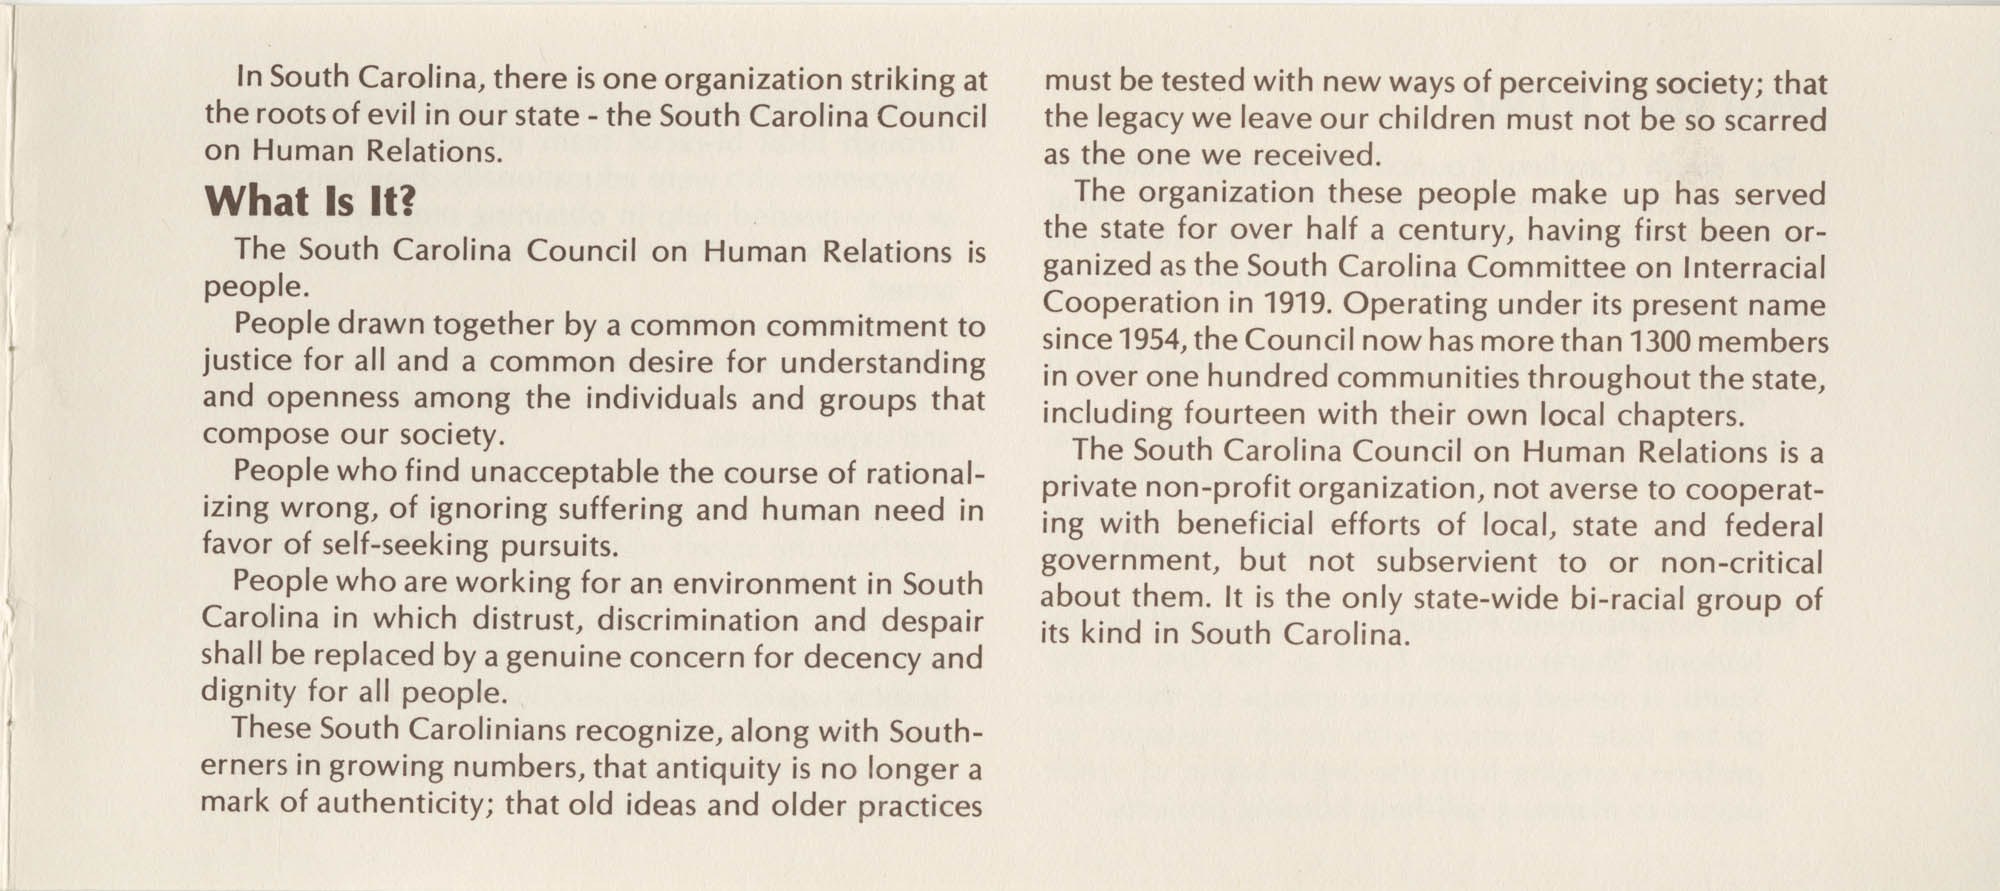 South Carolina Council on Human Relations Pamphlet, Page 2